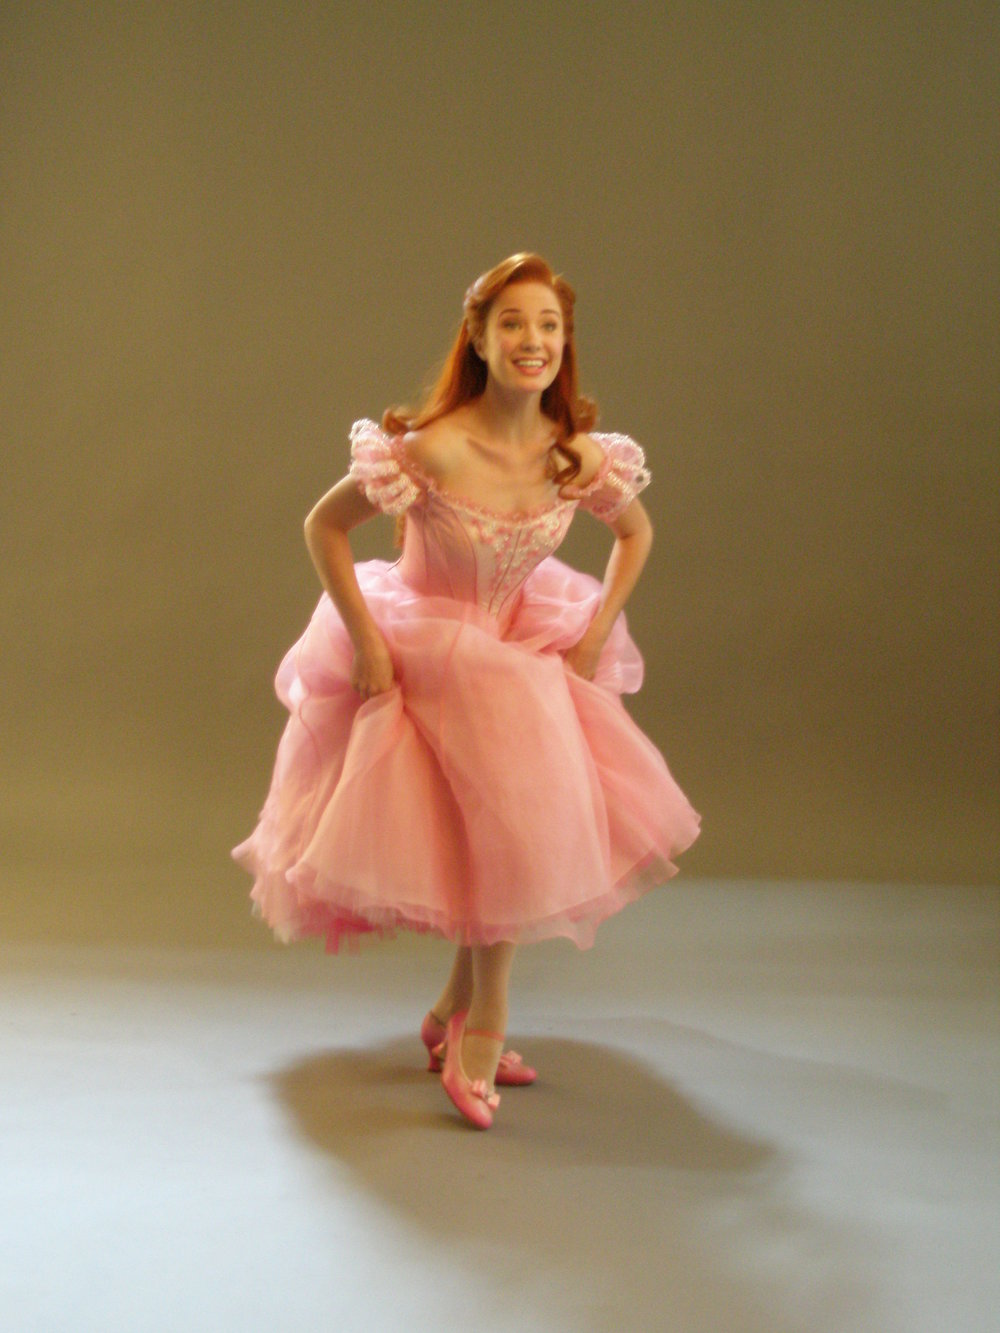 Sierra-Boggess-Little-Mermaid-Broadway-Denver Photo Call 9-7-2007 (21).JPG